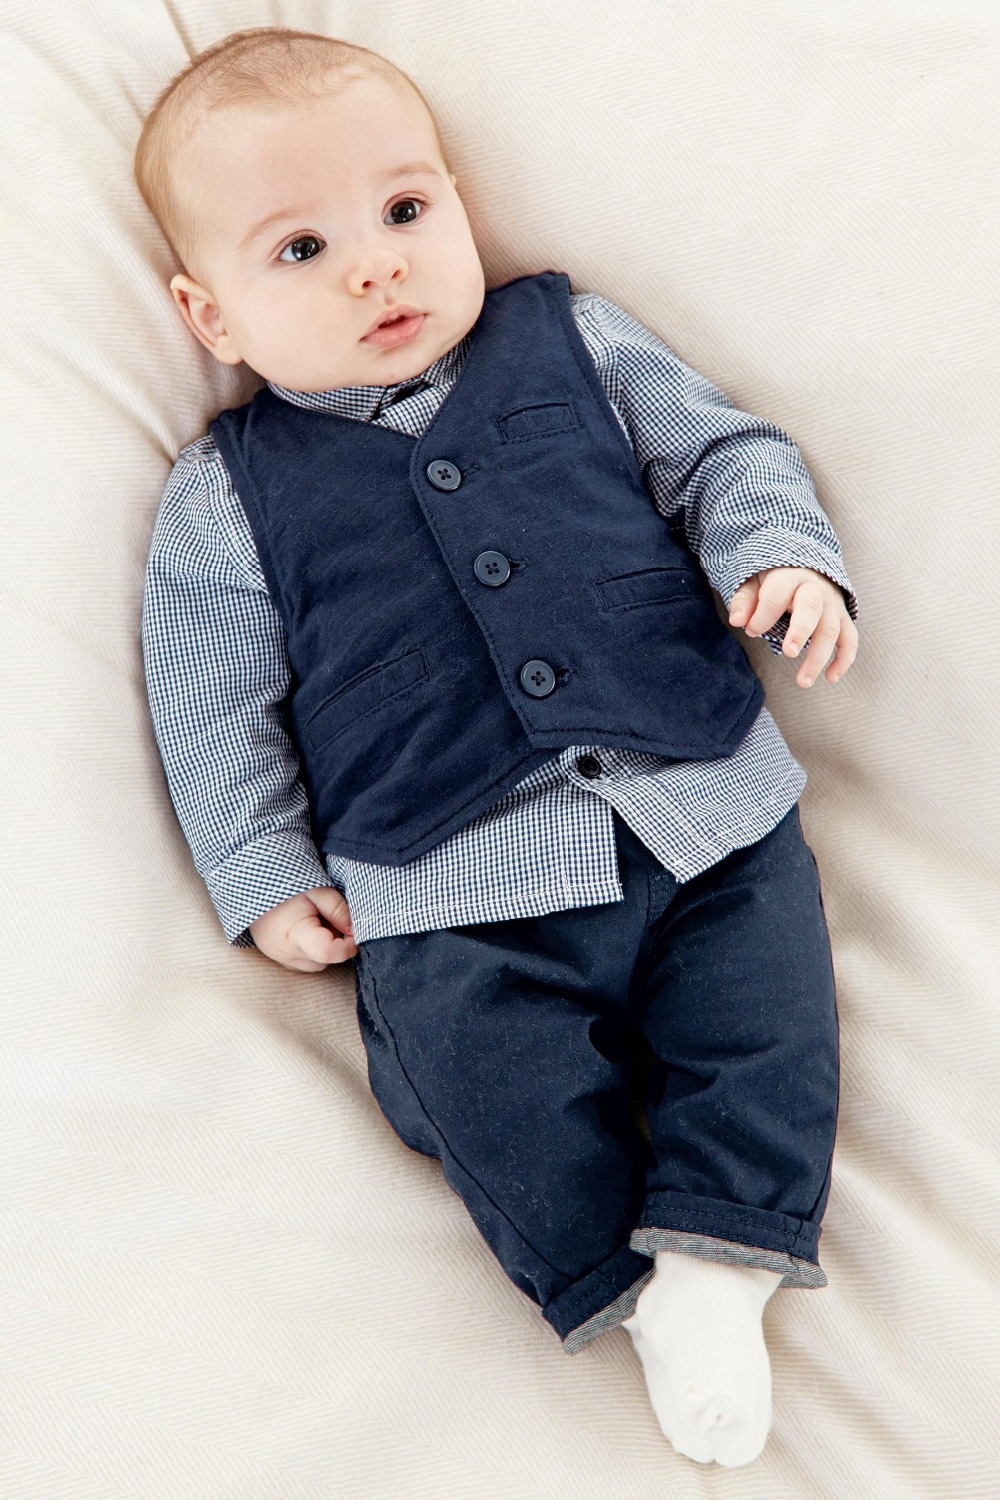 Find great deals on eBay for baby boy suits. Shop with confidence.